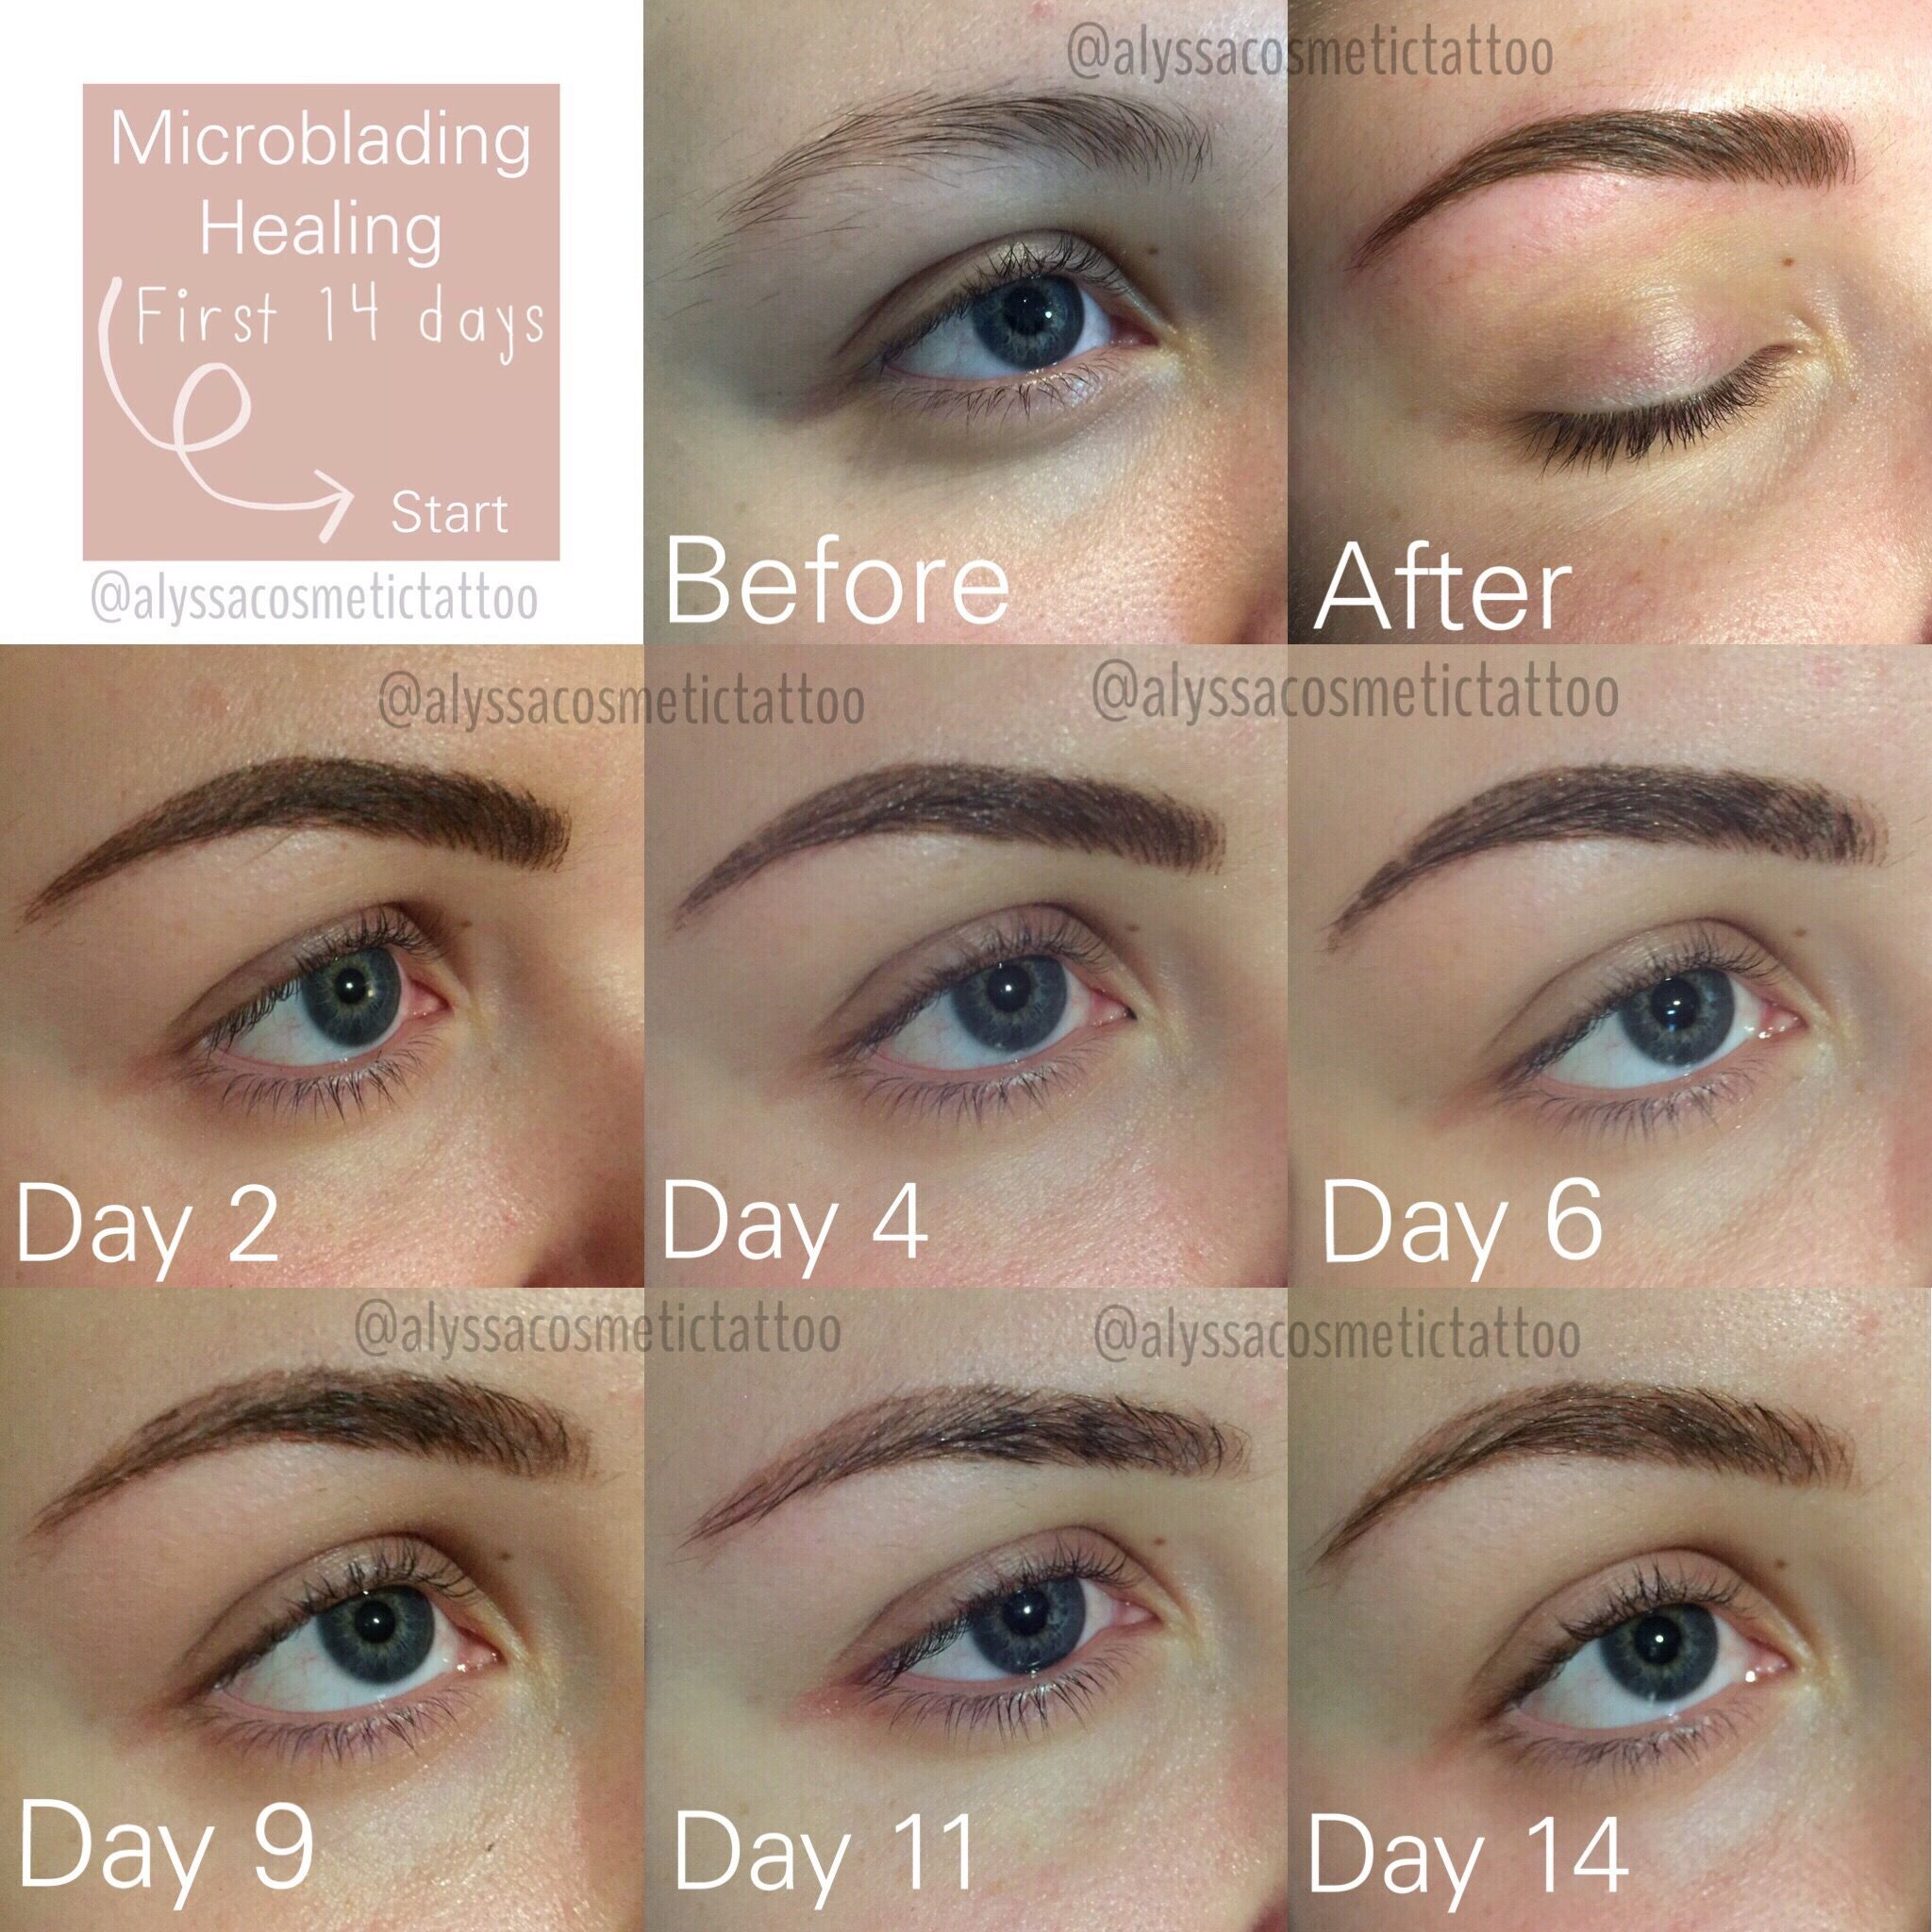 First 14 days of the healing process after Microblading are